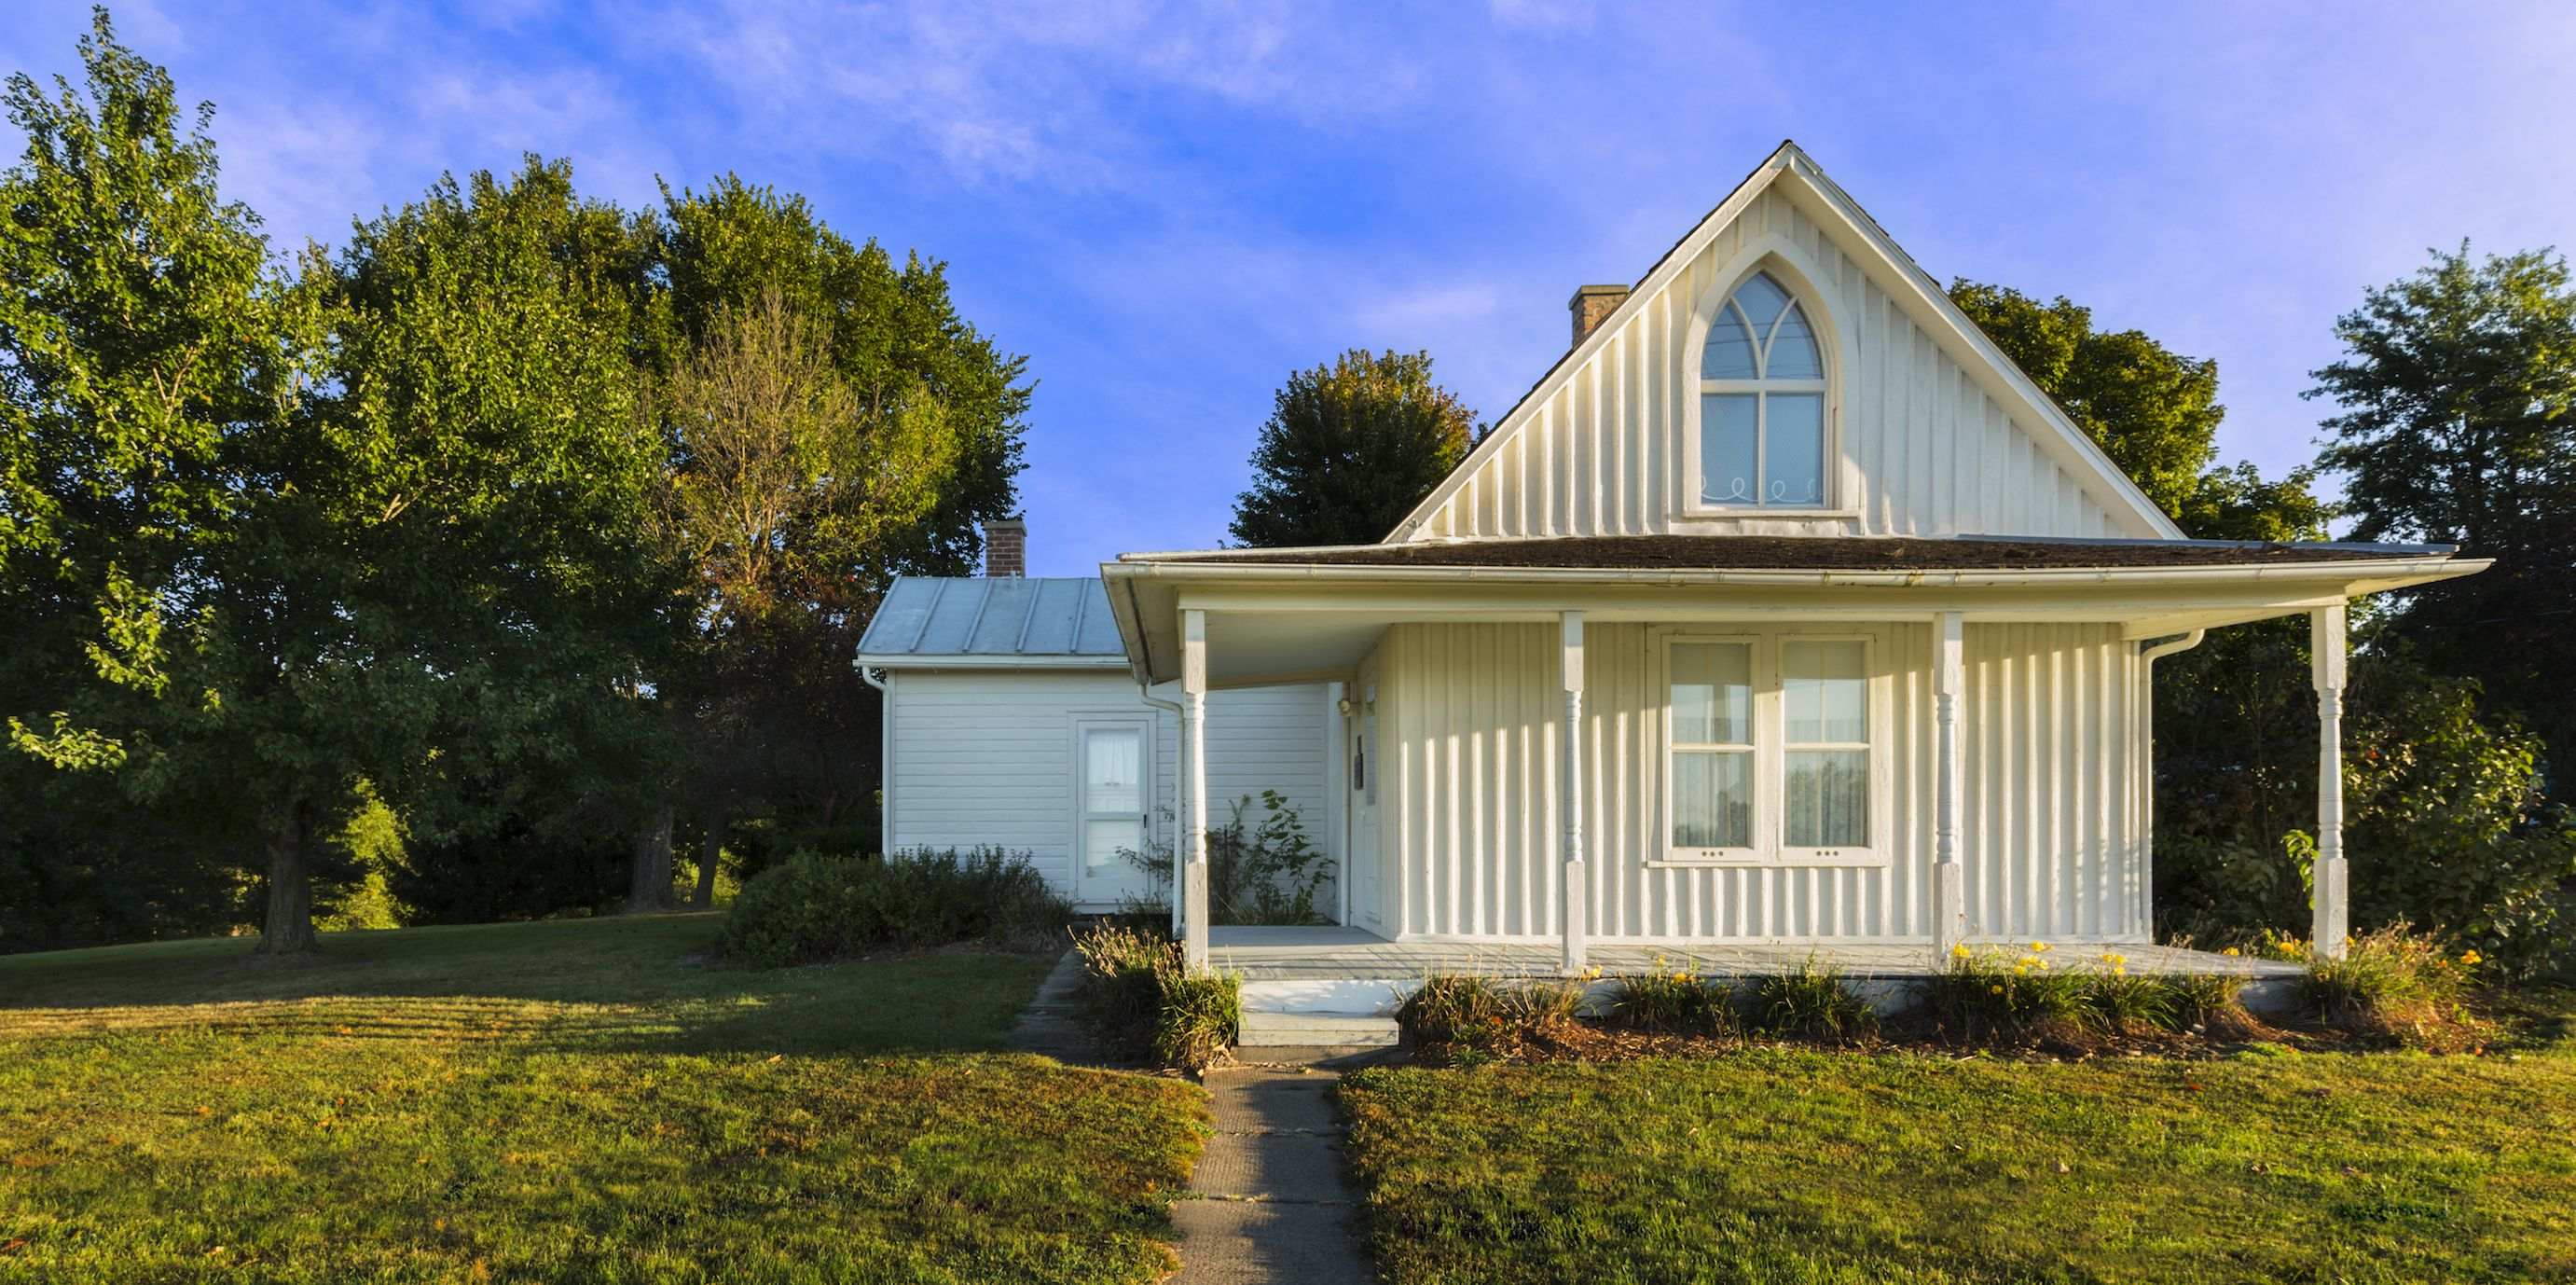 Image Result For Search House Plans By Architectural Style House Plans And More